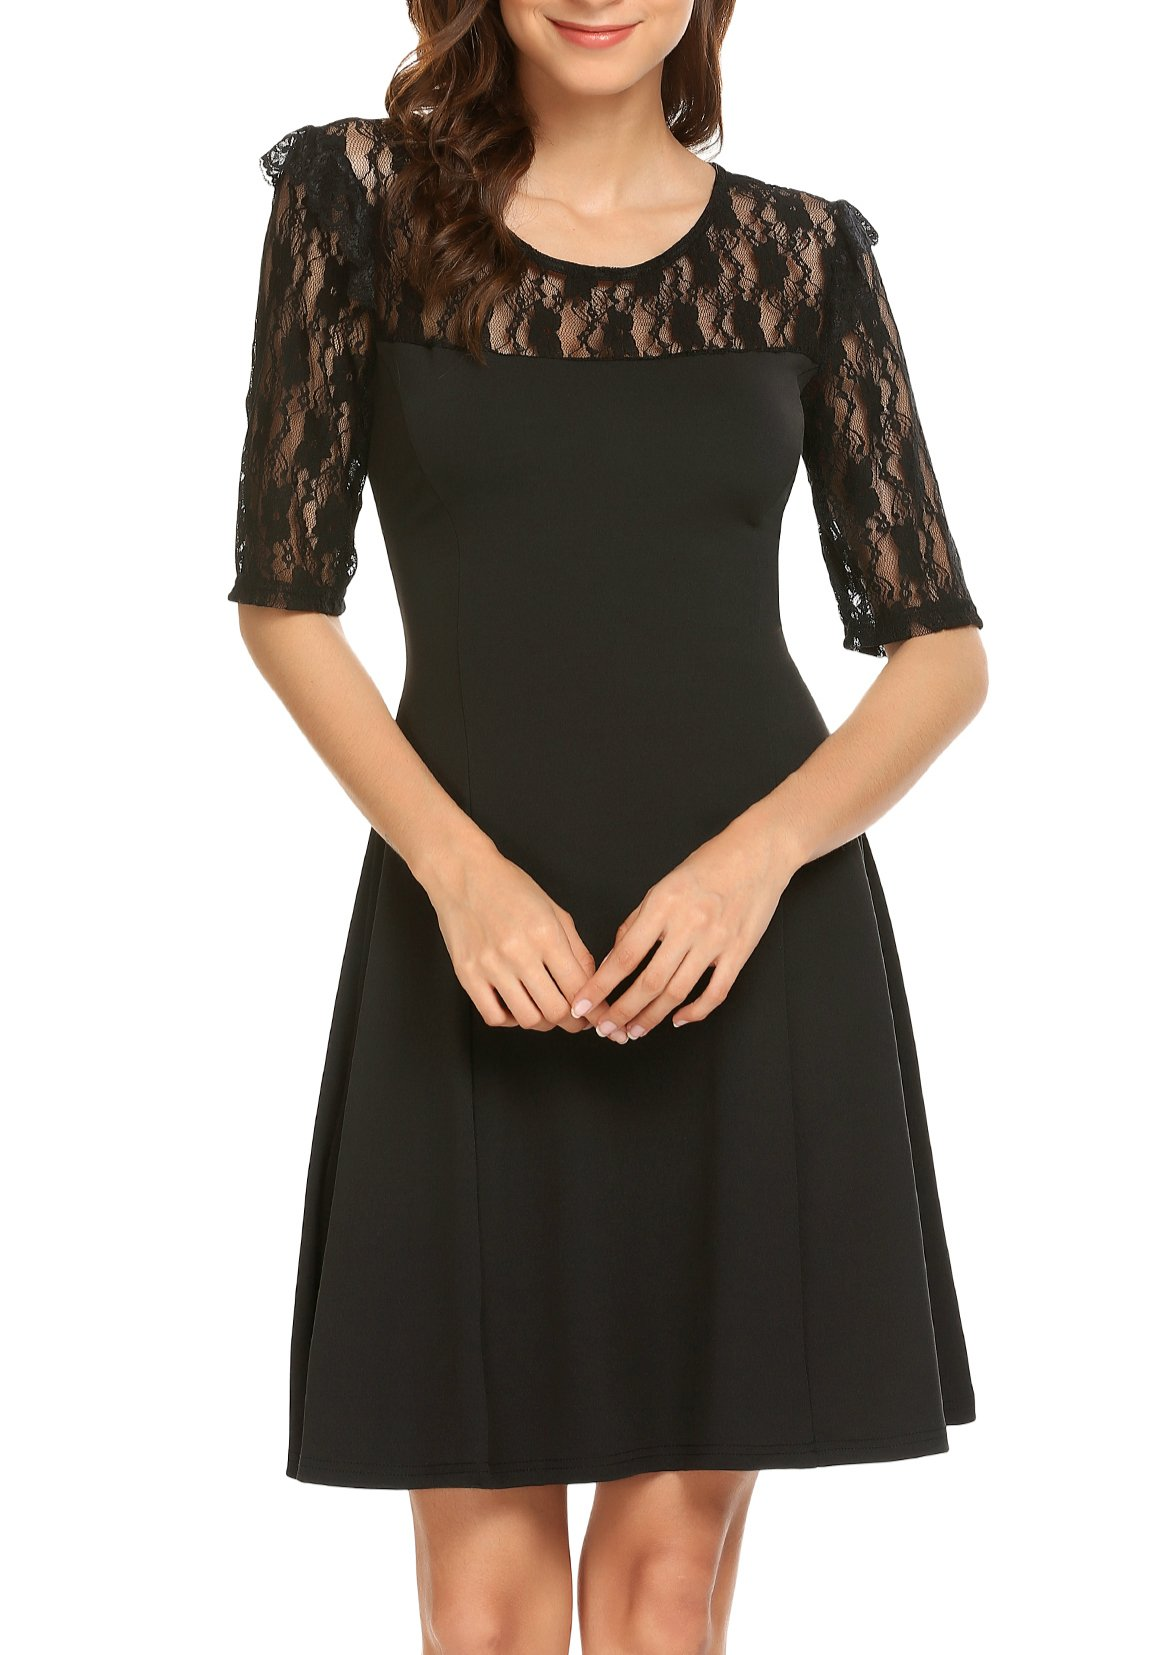 Showyoo Women's Elegant Floral Lace 3/4 Sleeve Cocktail Evening Party Dress, Black, XL